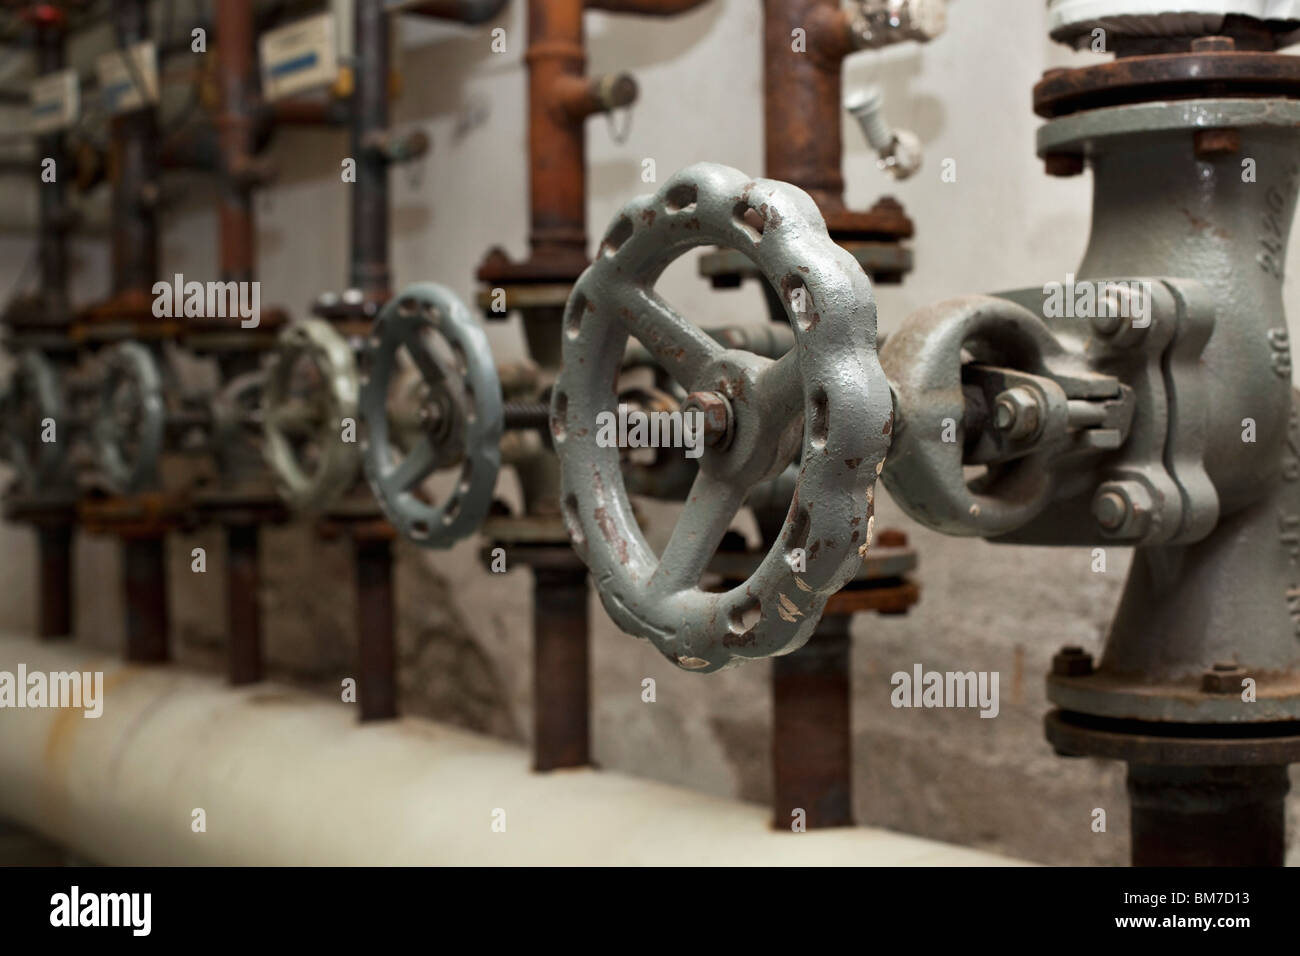 Detail of valves and pipes - Stock Image